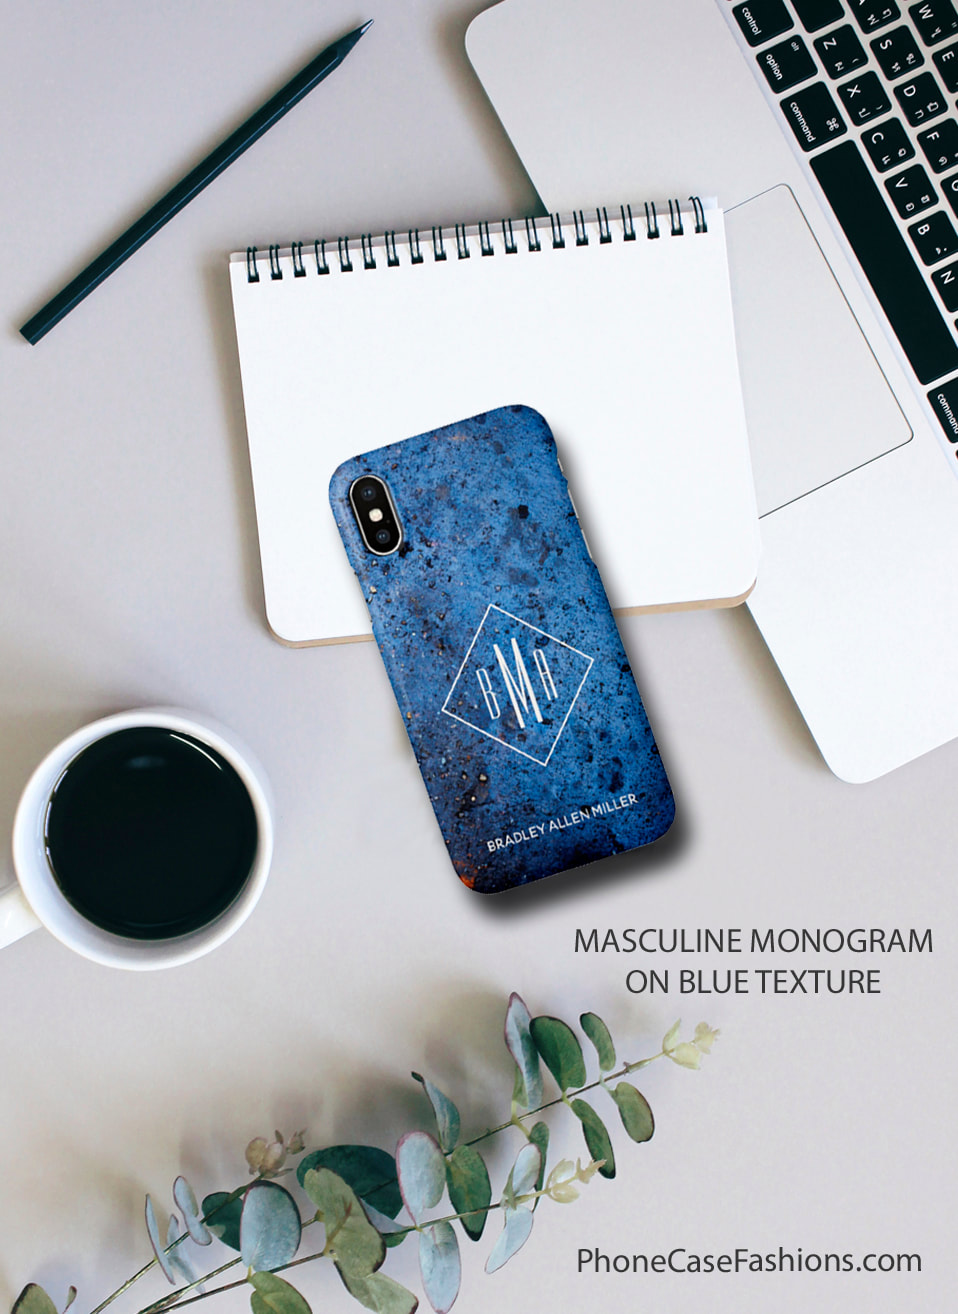 Men now have more choices than a black cell phone case. Our Blue Texture design is cool as is or add our initials, monogram and or your name. Don't hide behind an ugly phone case, design one you'll love.  Shop PhoneCaseFashions.com to design a case you'll love.